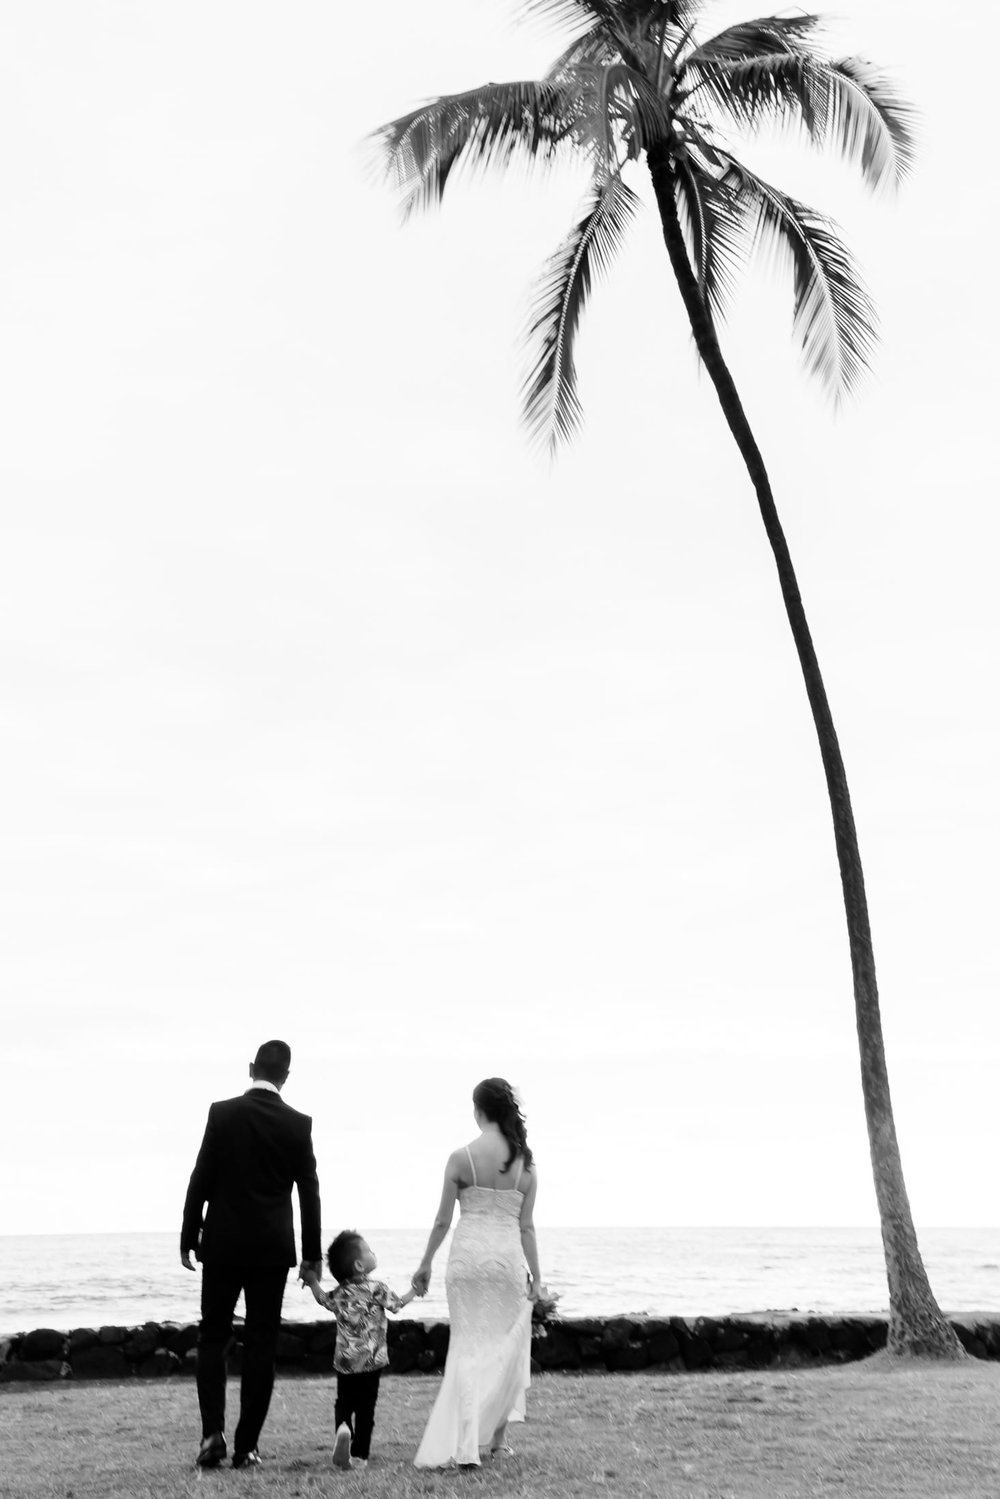 Big-Island-Hawaii-Jade-Keyes-Derrick-Alig-Daylight-Mind-Kailua-Kona-Hawaii-Wedding6.jpg